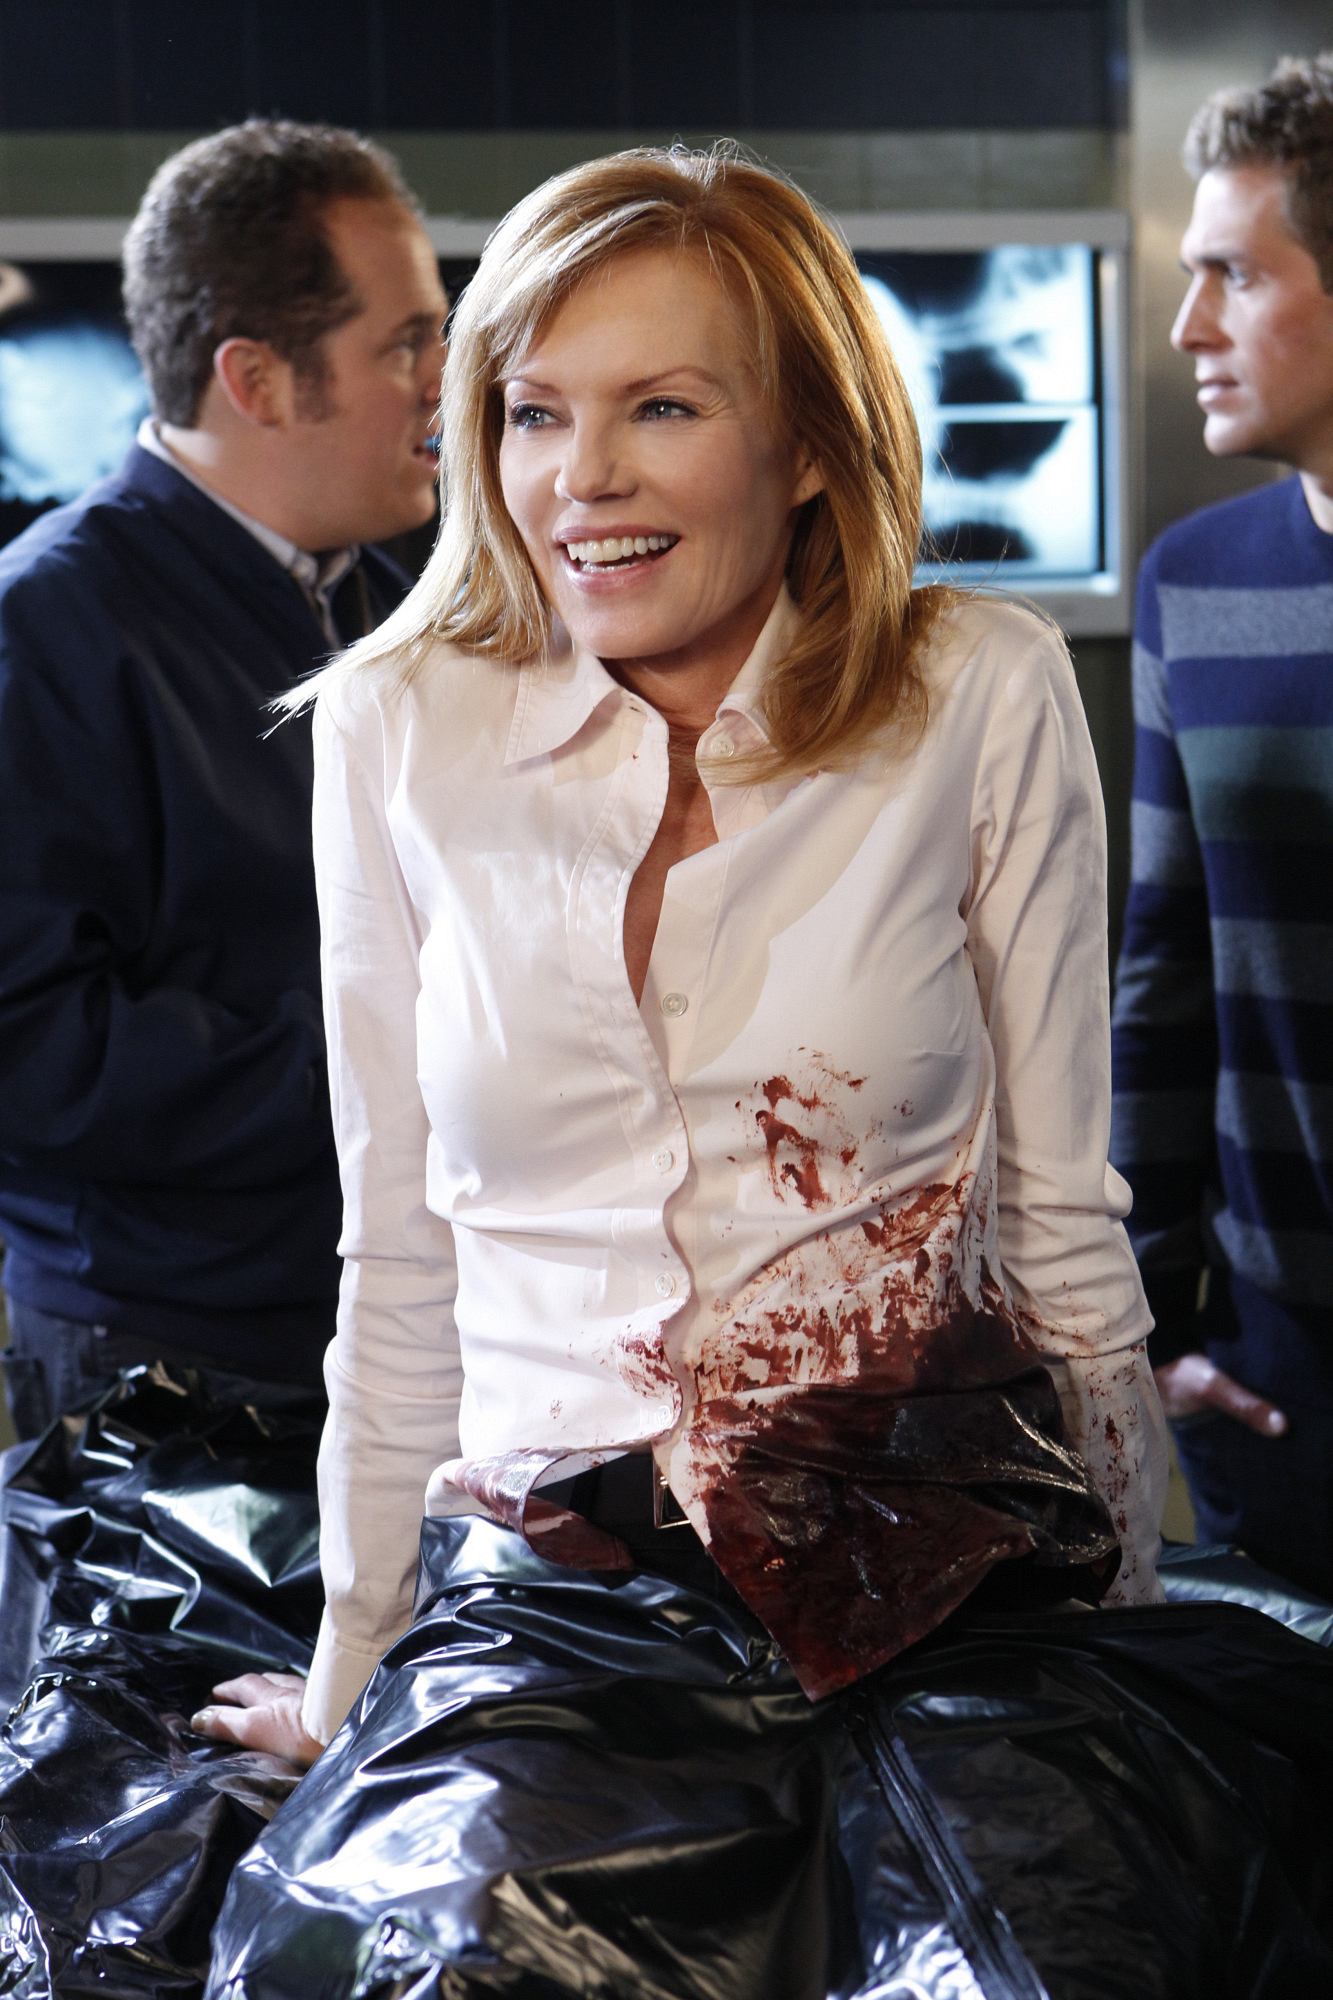 Marg, Behind the Scenes